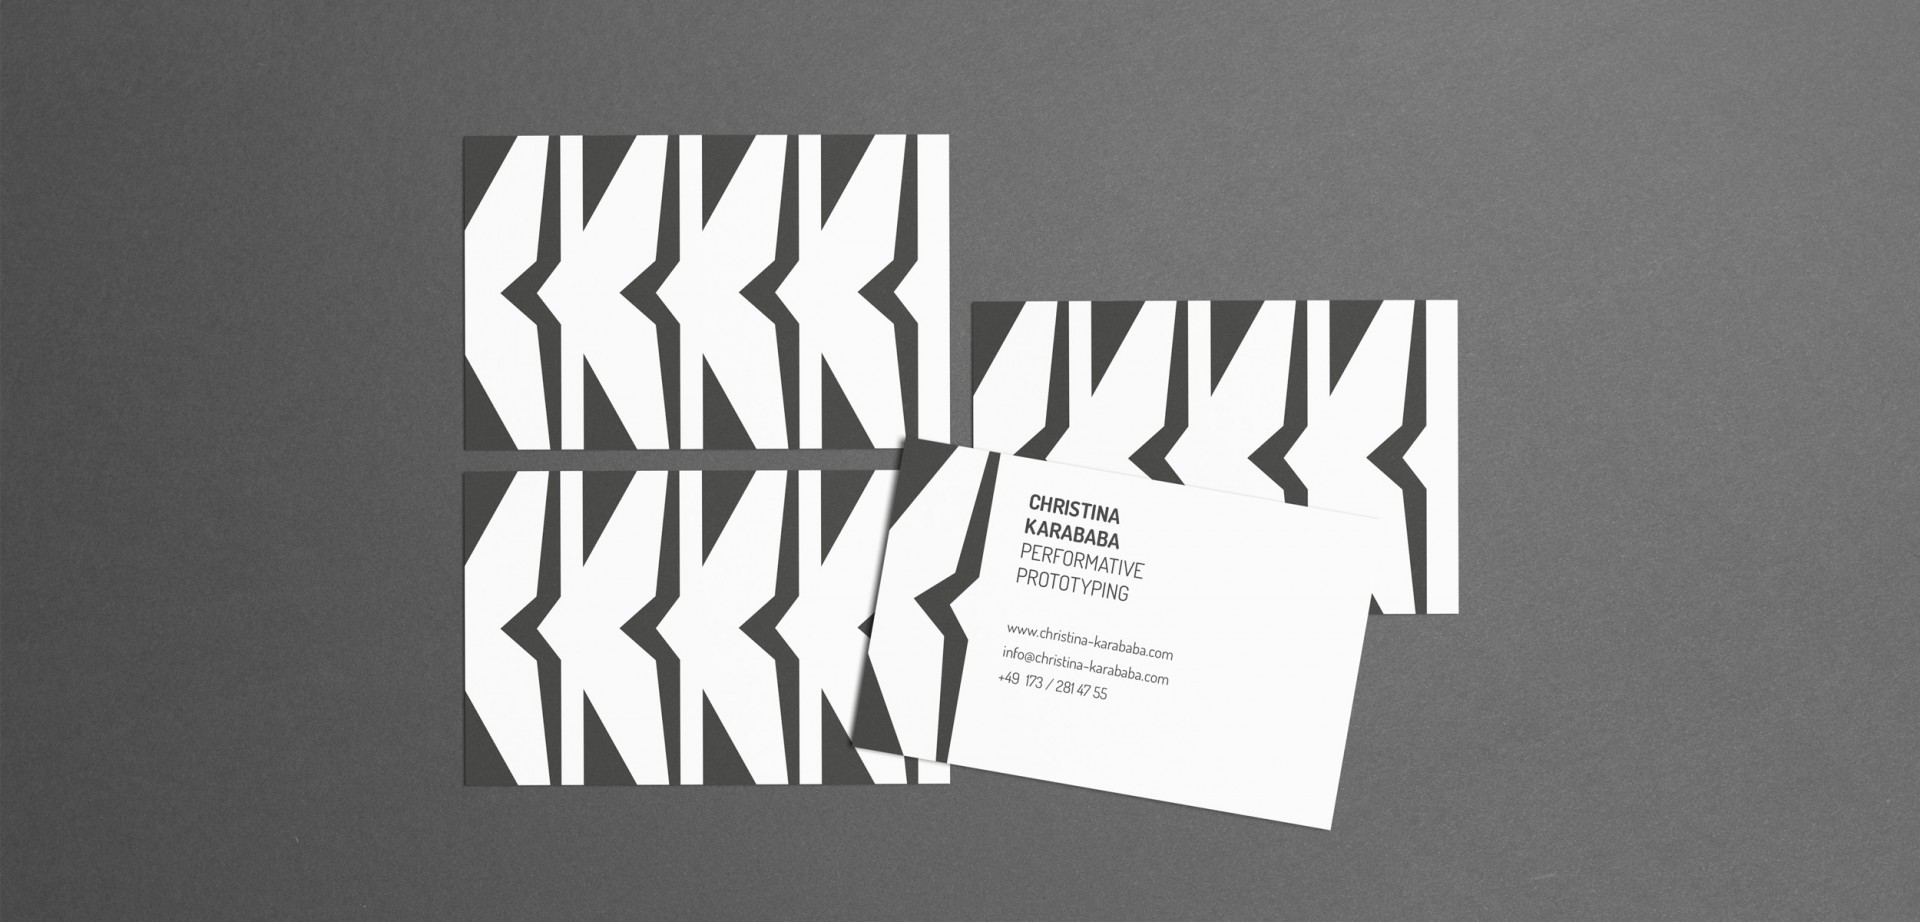 Christina Karababa, Business Cards